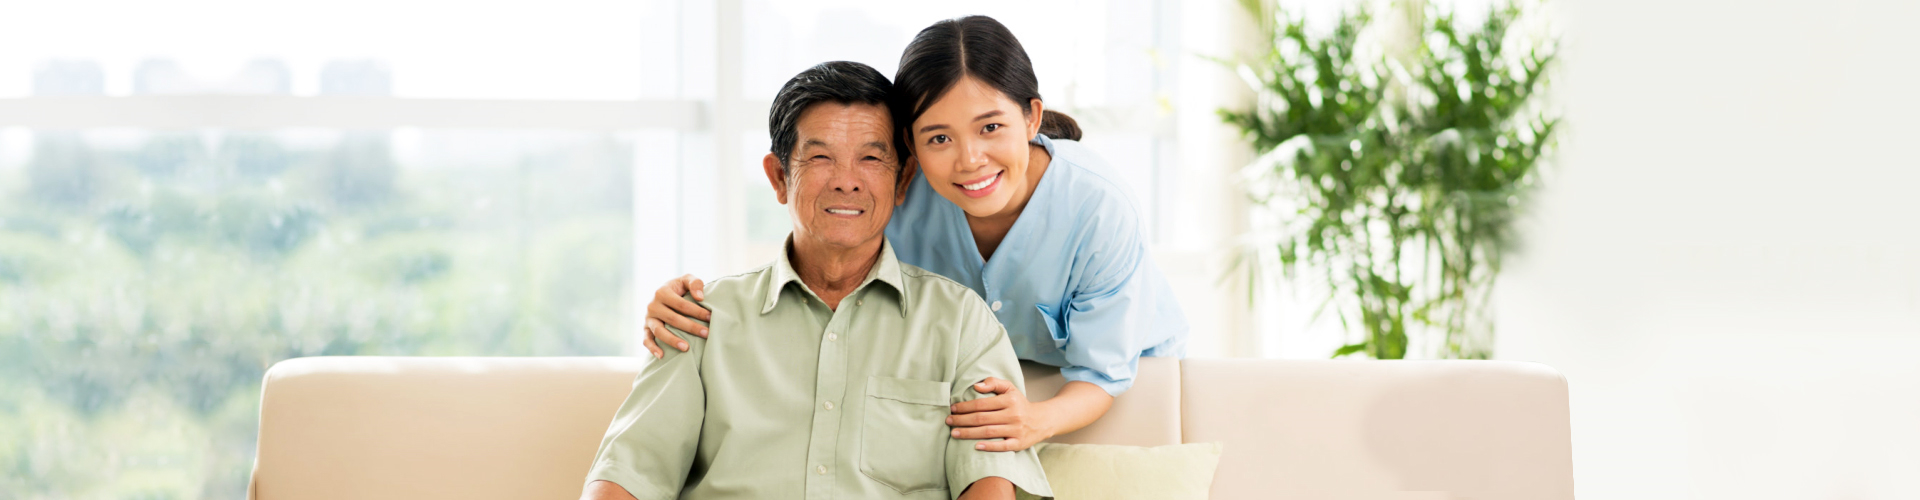 asian caregiver and her old man patient